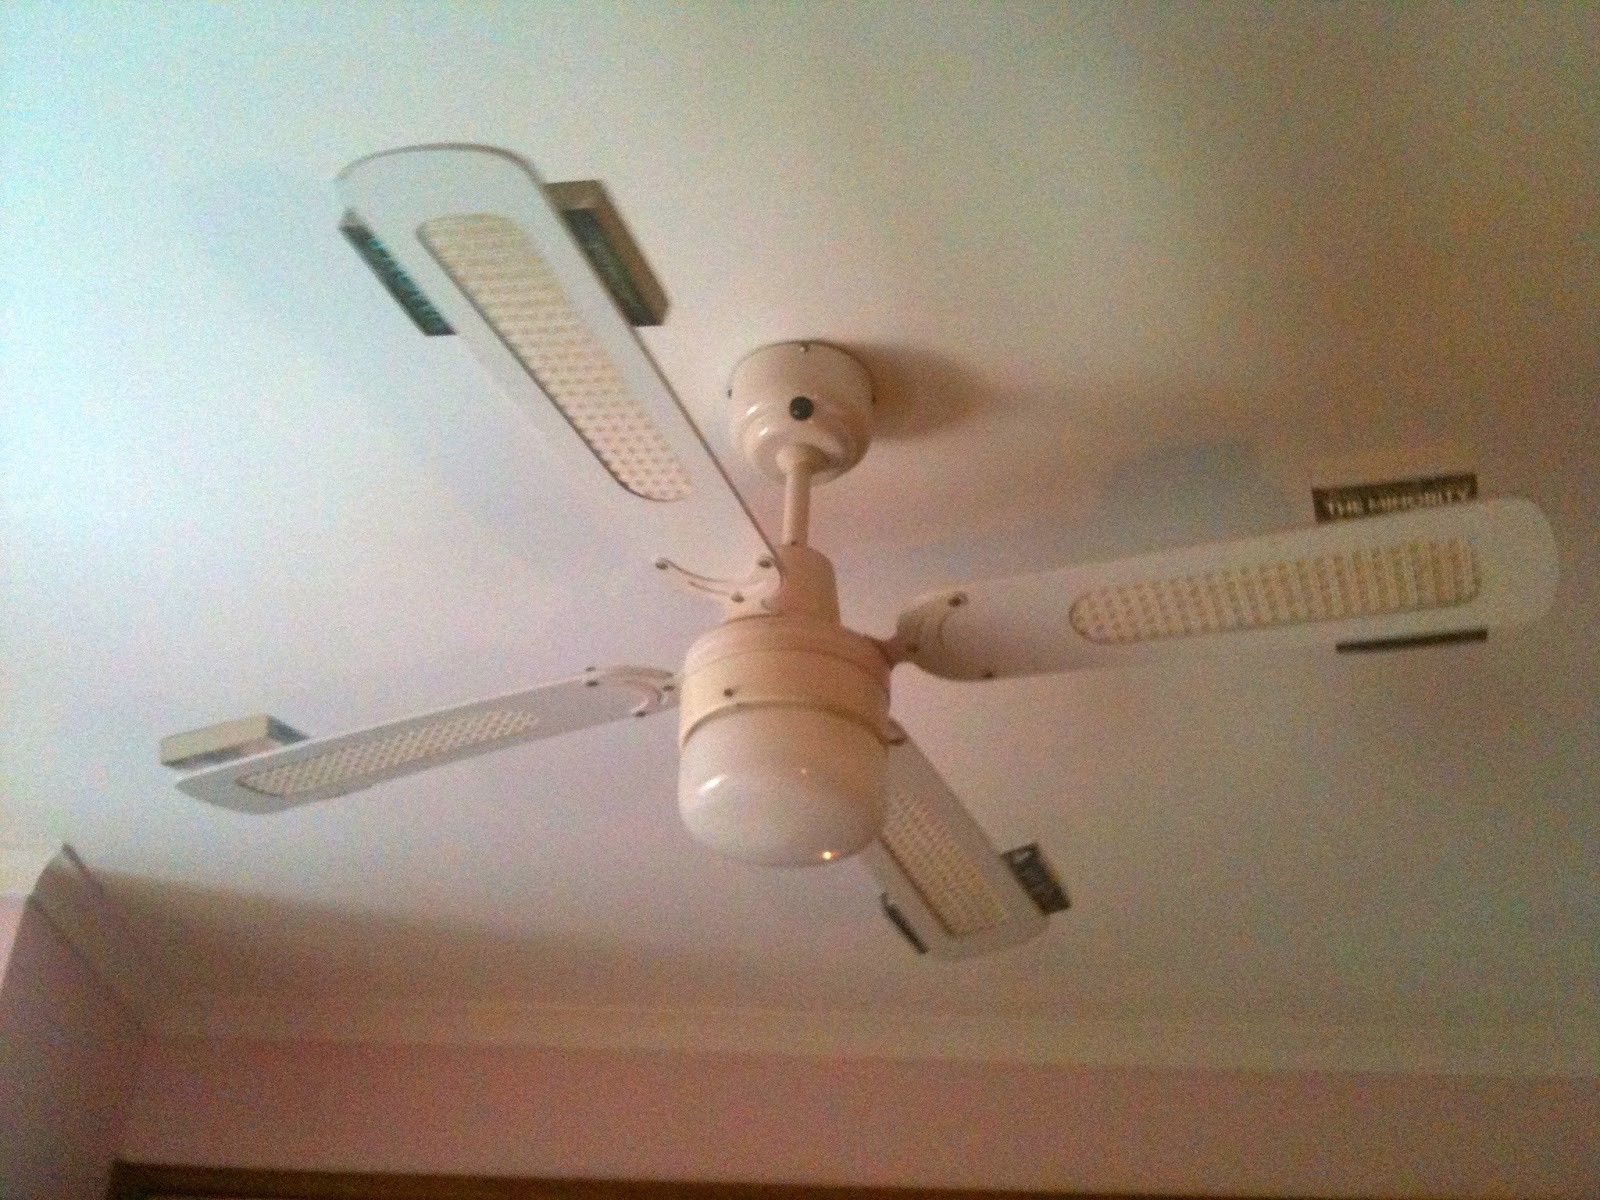 Tools Home Improvement Fan Blade Designs Tropical Hibiscus Ceiling Fan Blade Covers Appliances Ceiling Fan Blades Tools Home Improvement